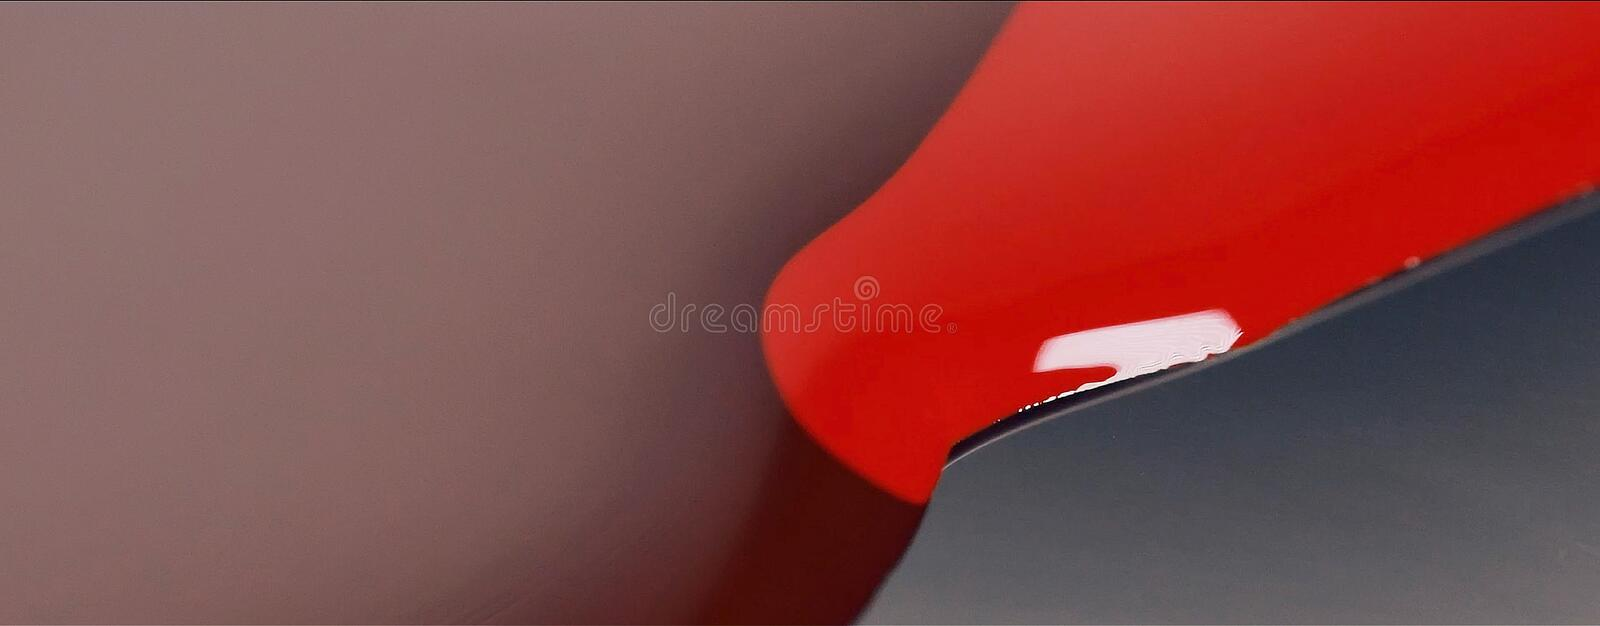 Red paint lipstick liquid texture, oil paint for painting, mixing shades, art make up cosmetic for face mix color.  royalty free stock image